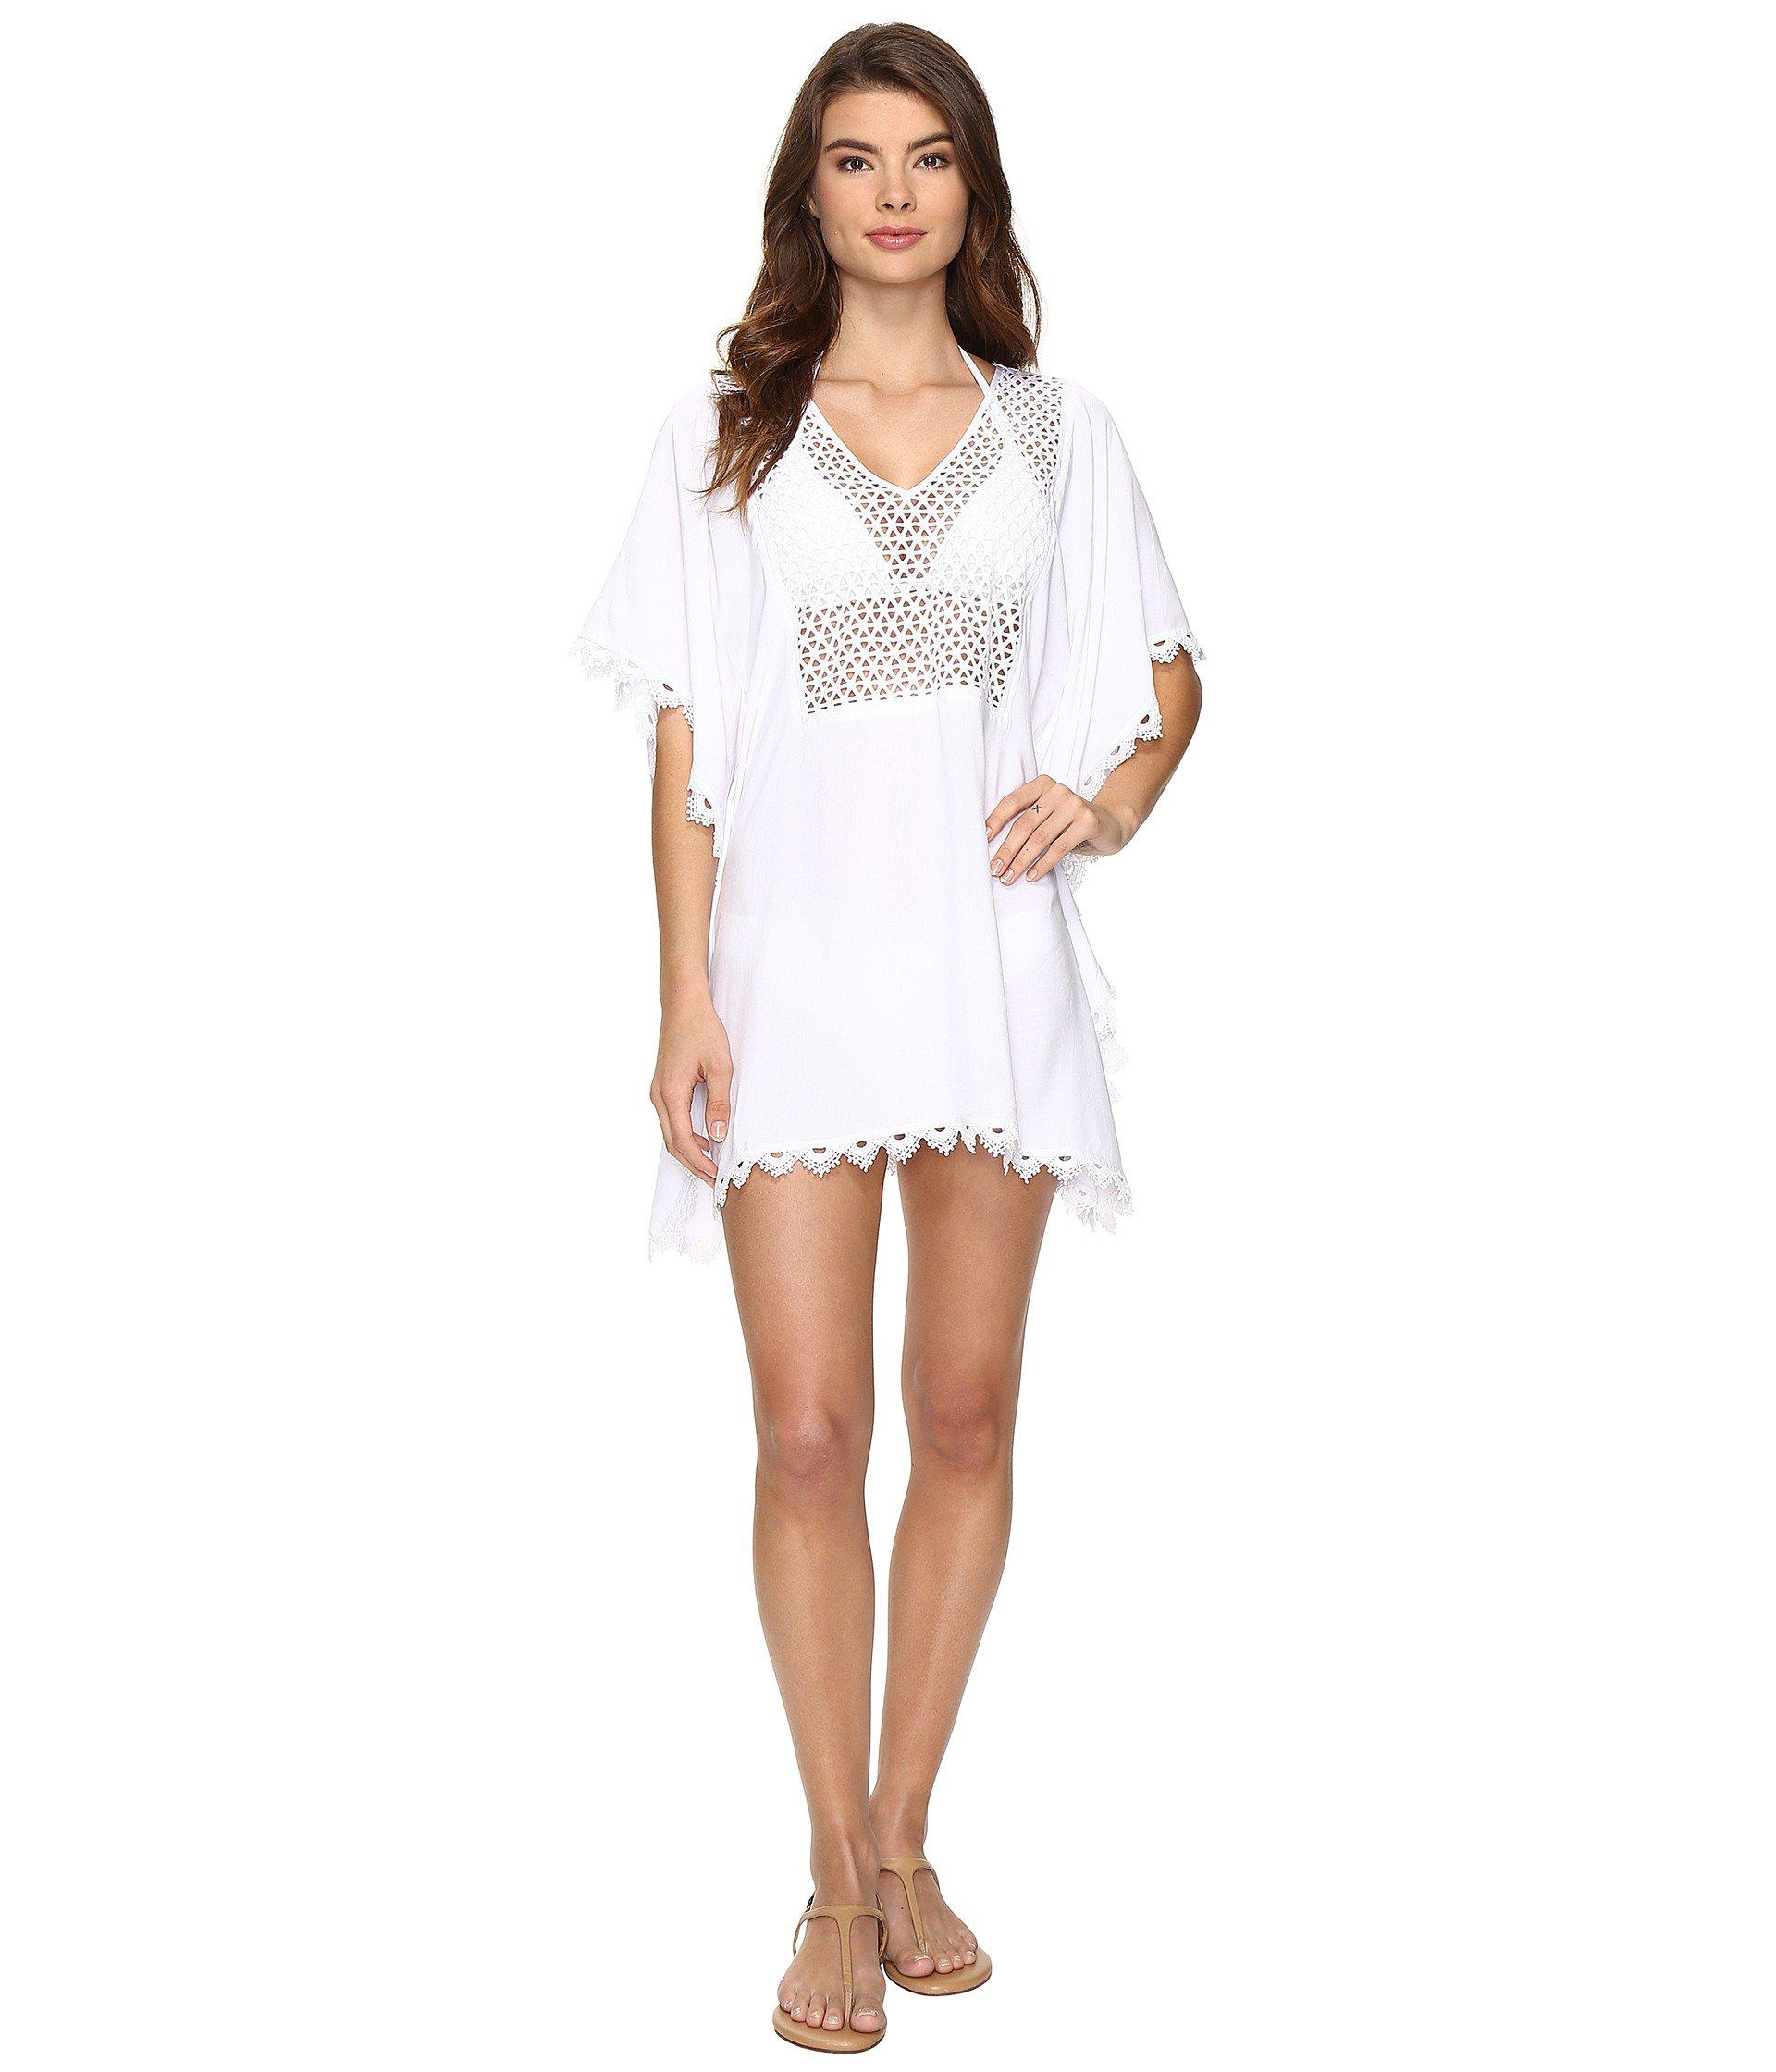 dfa7dfb524aa Lyst - Seafolly Lace Insert Kaftan Cover-up in White